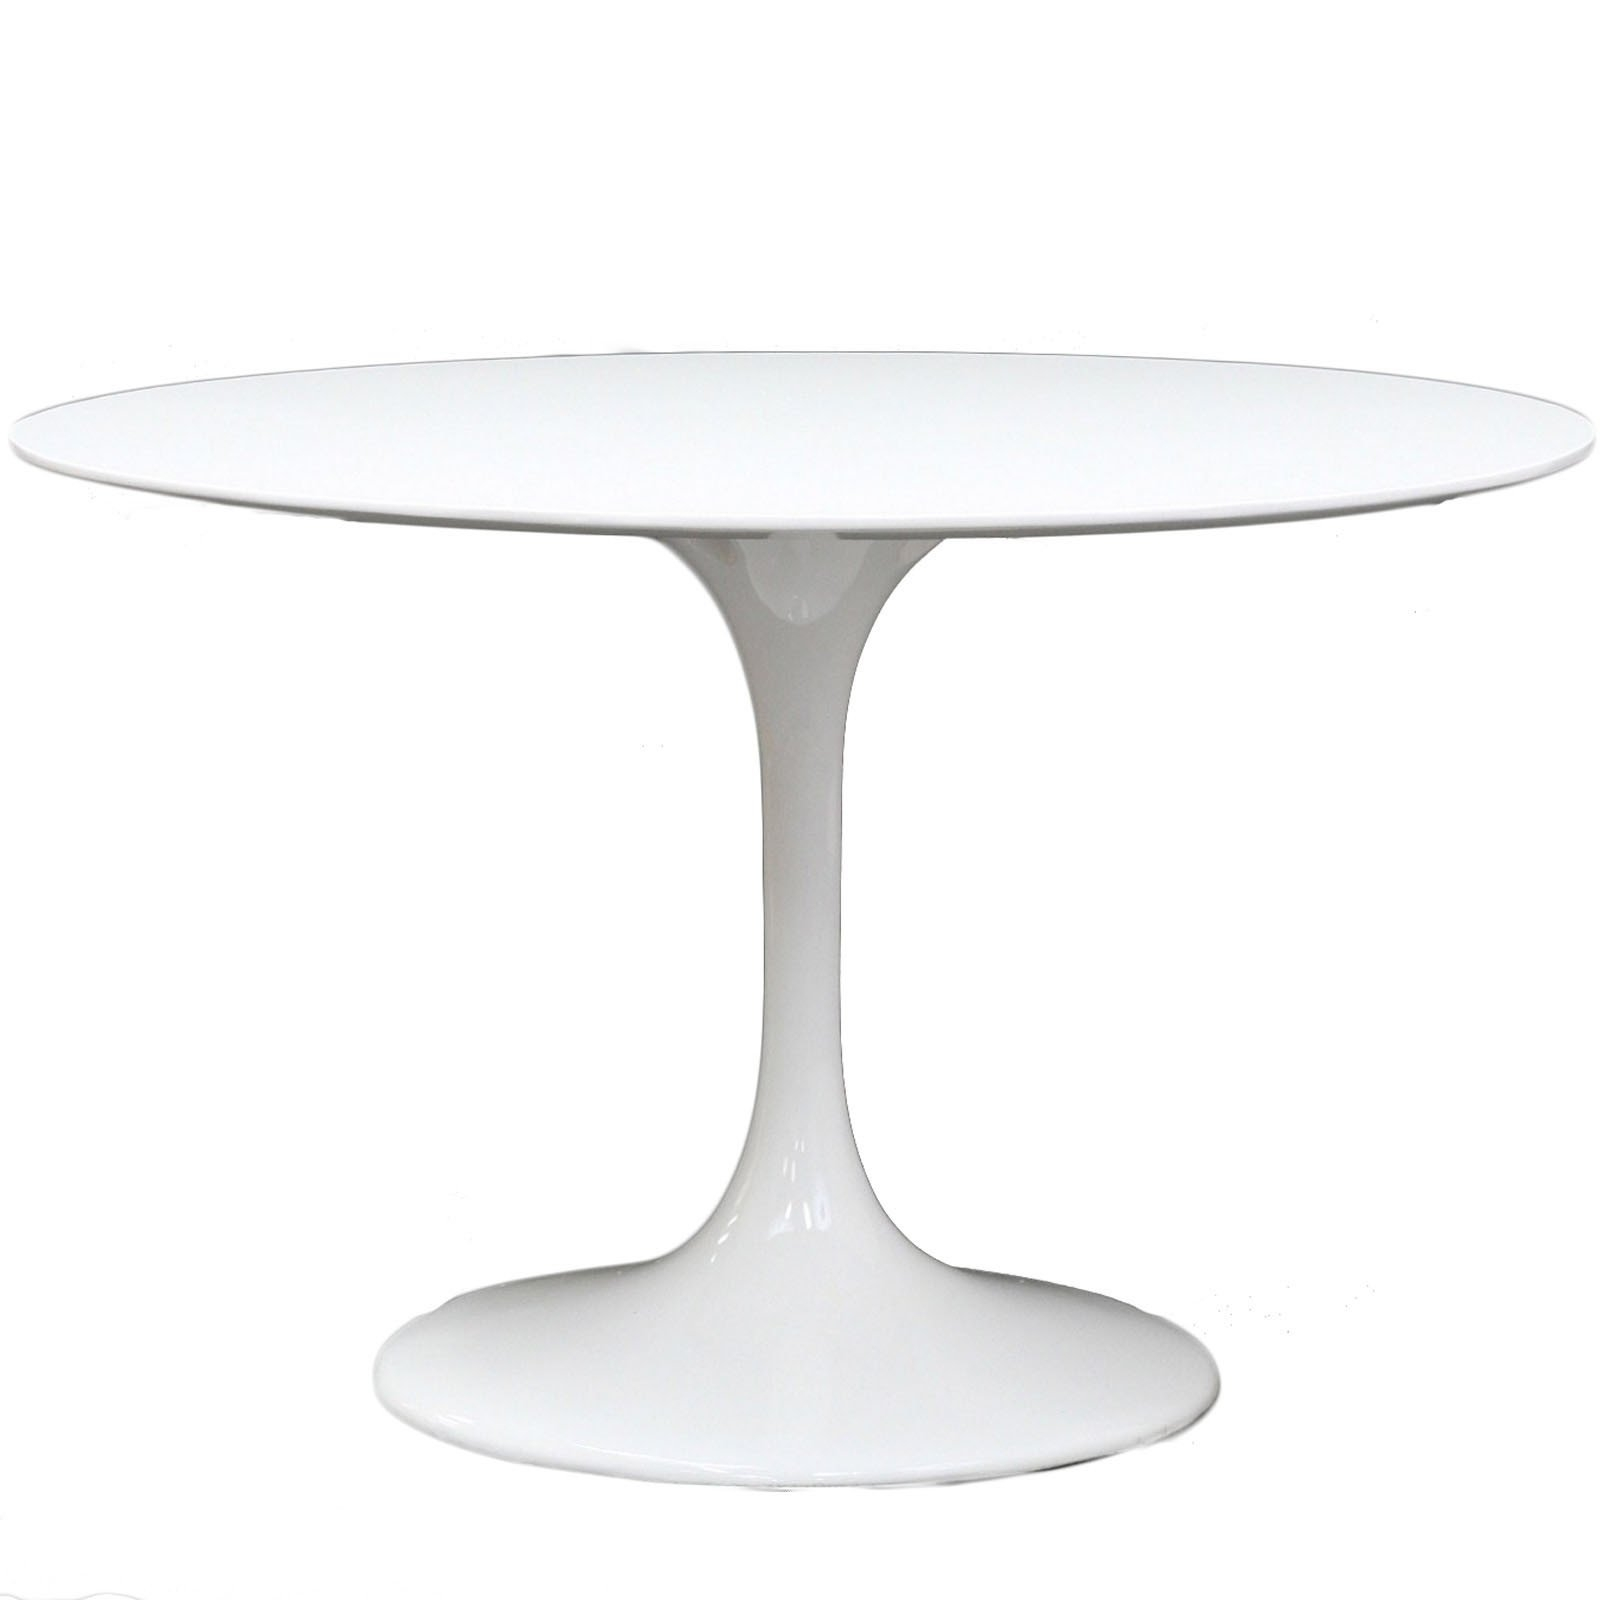 Pedestal Base For Round Table